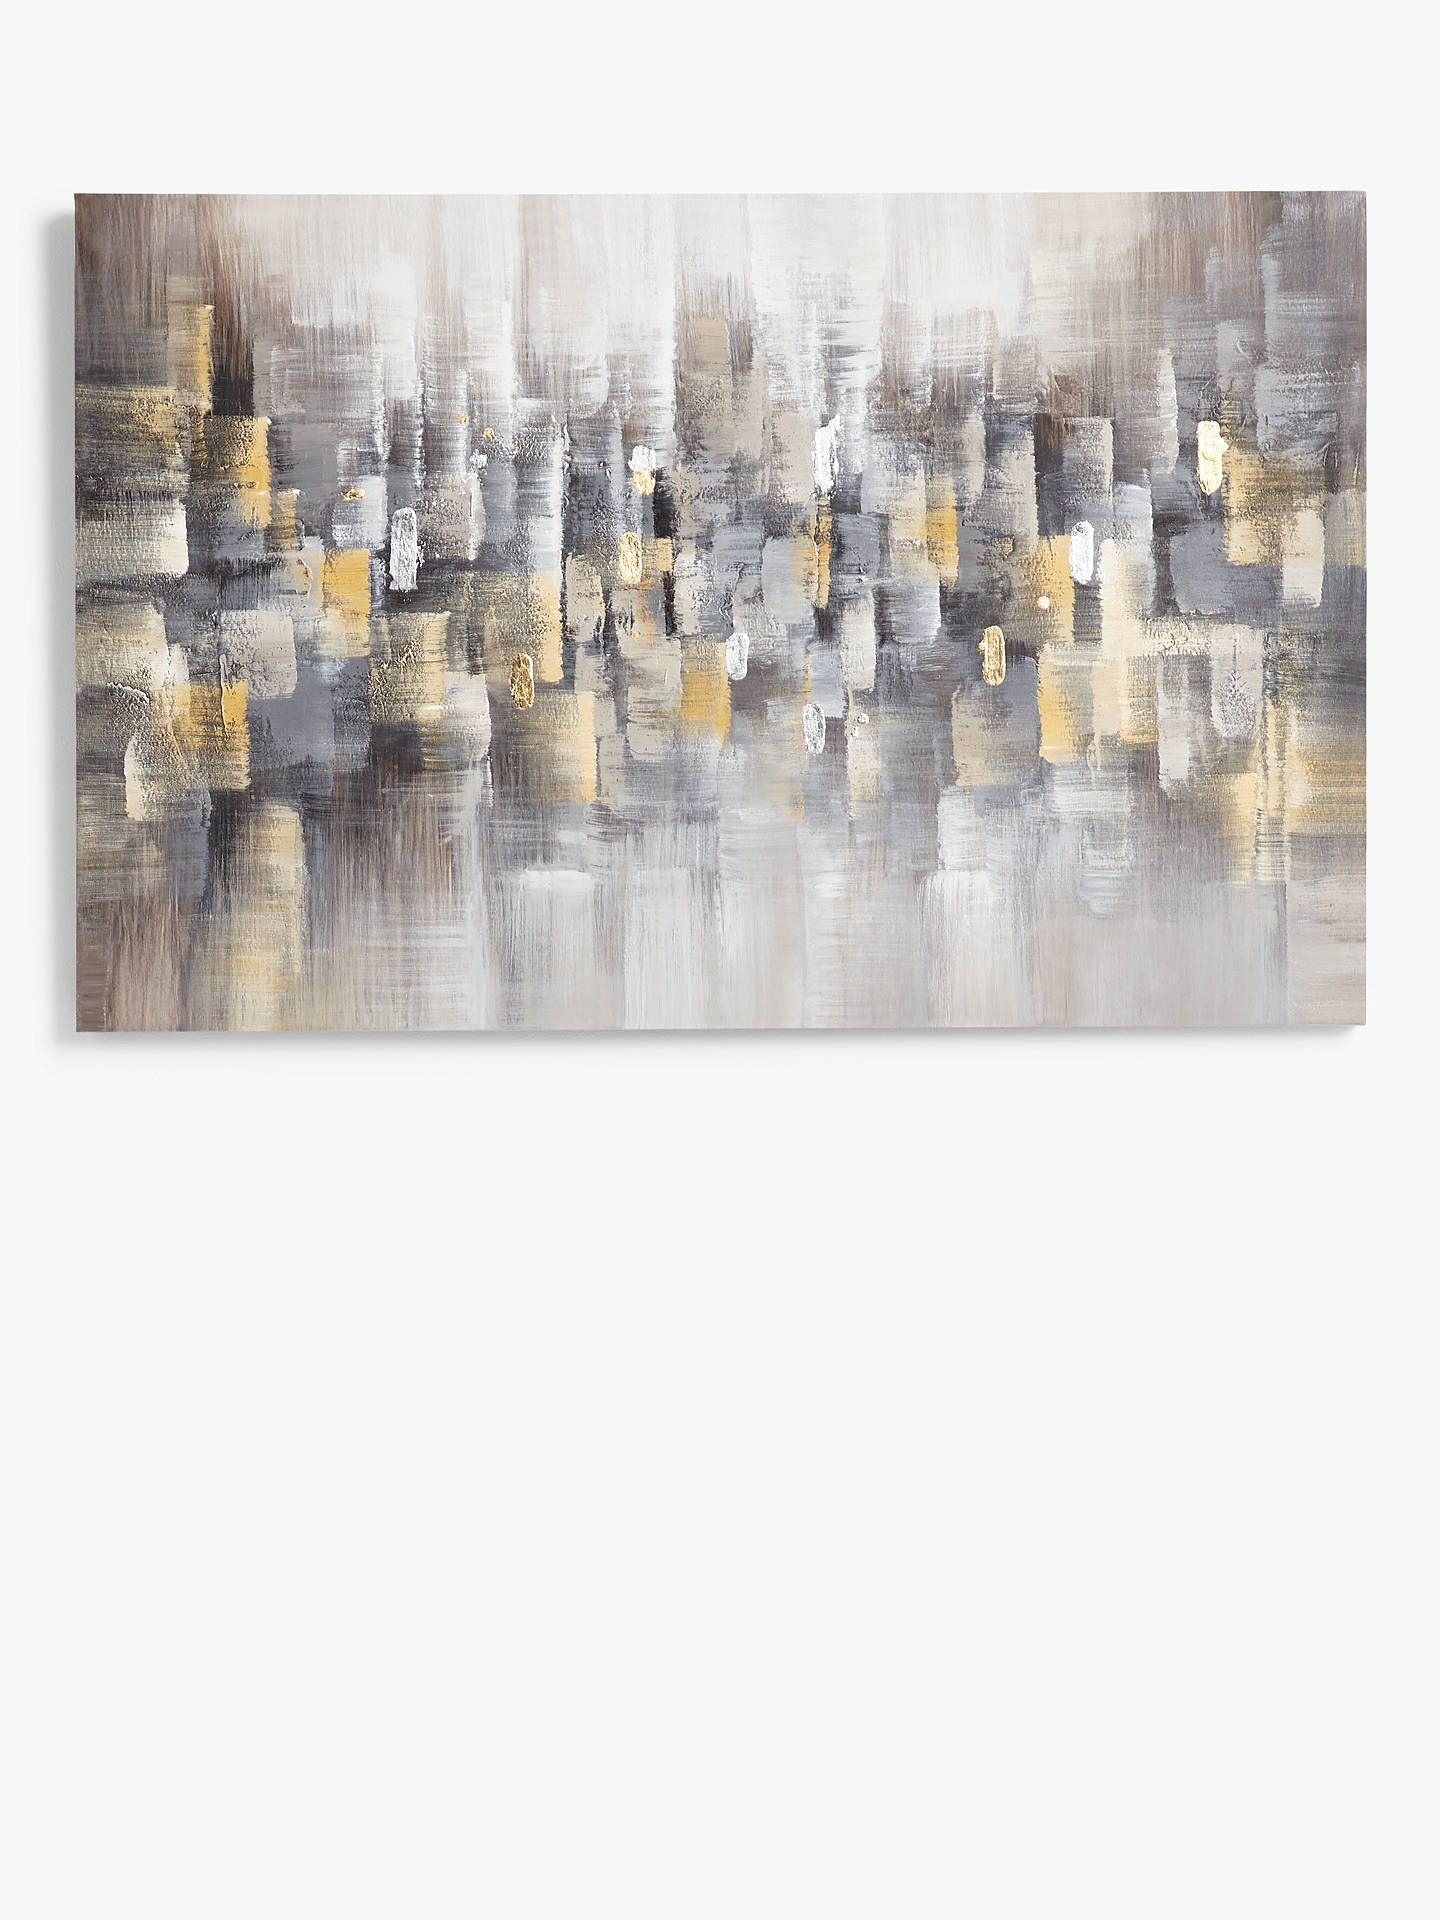 Buyzhen ping thora hand painted canvas 72 x 112cm grey online at johnlewis com